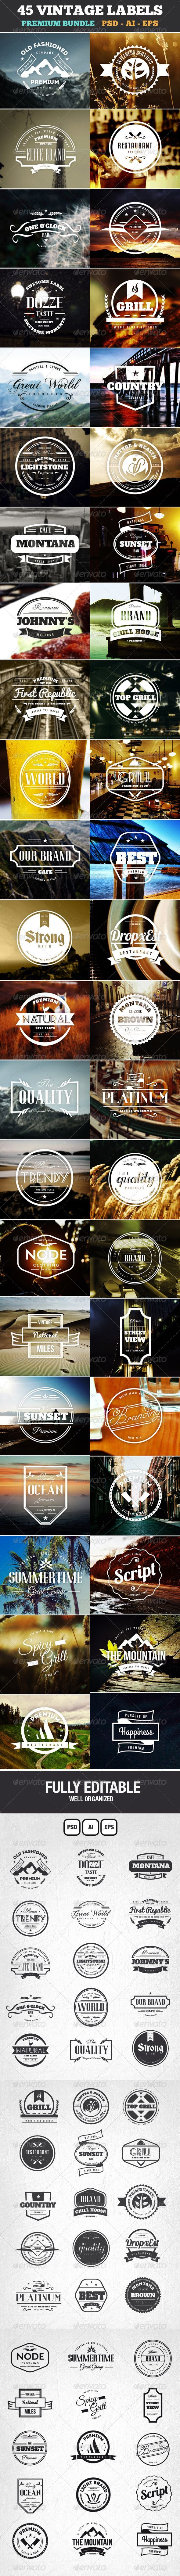 45 Retro Vintage Labels and Badges that you can use on Logos with emblem style, on beer labels, restaurants, coffee shops, bar and other places. Also you can use them on modern labels with a touch of Vintage style for your Website, Business, Stickers, T-shirt, Retro Labels and more.